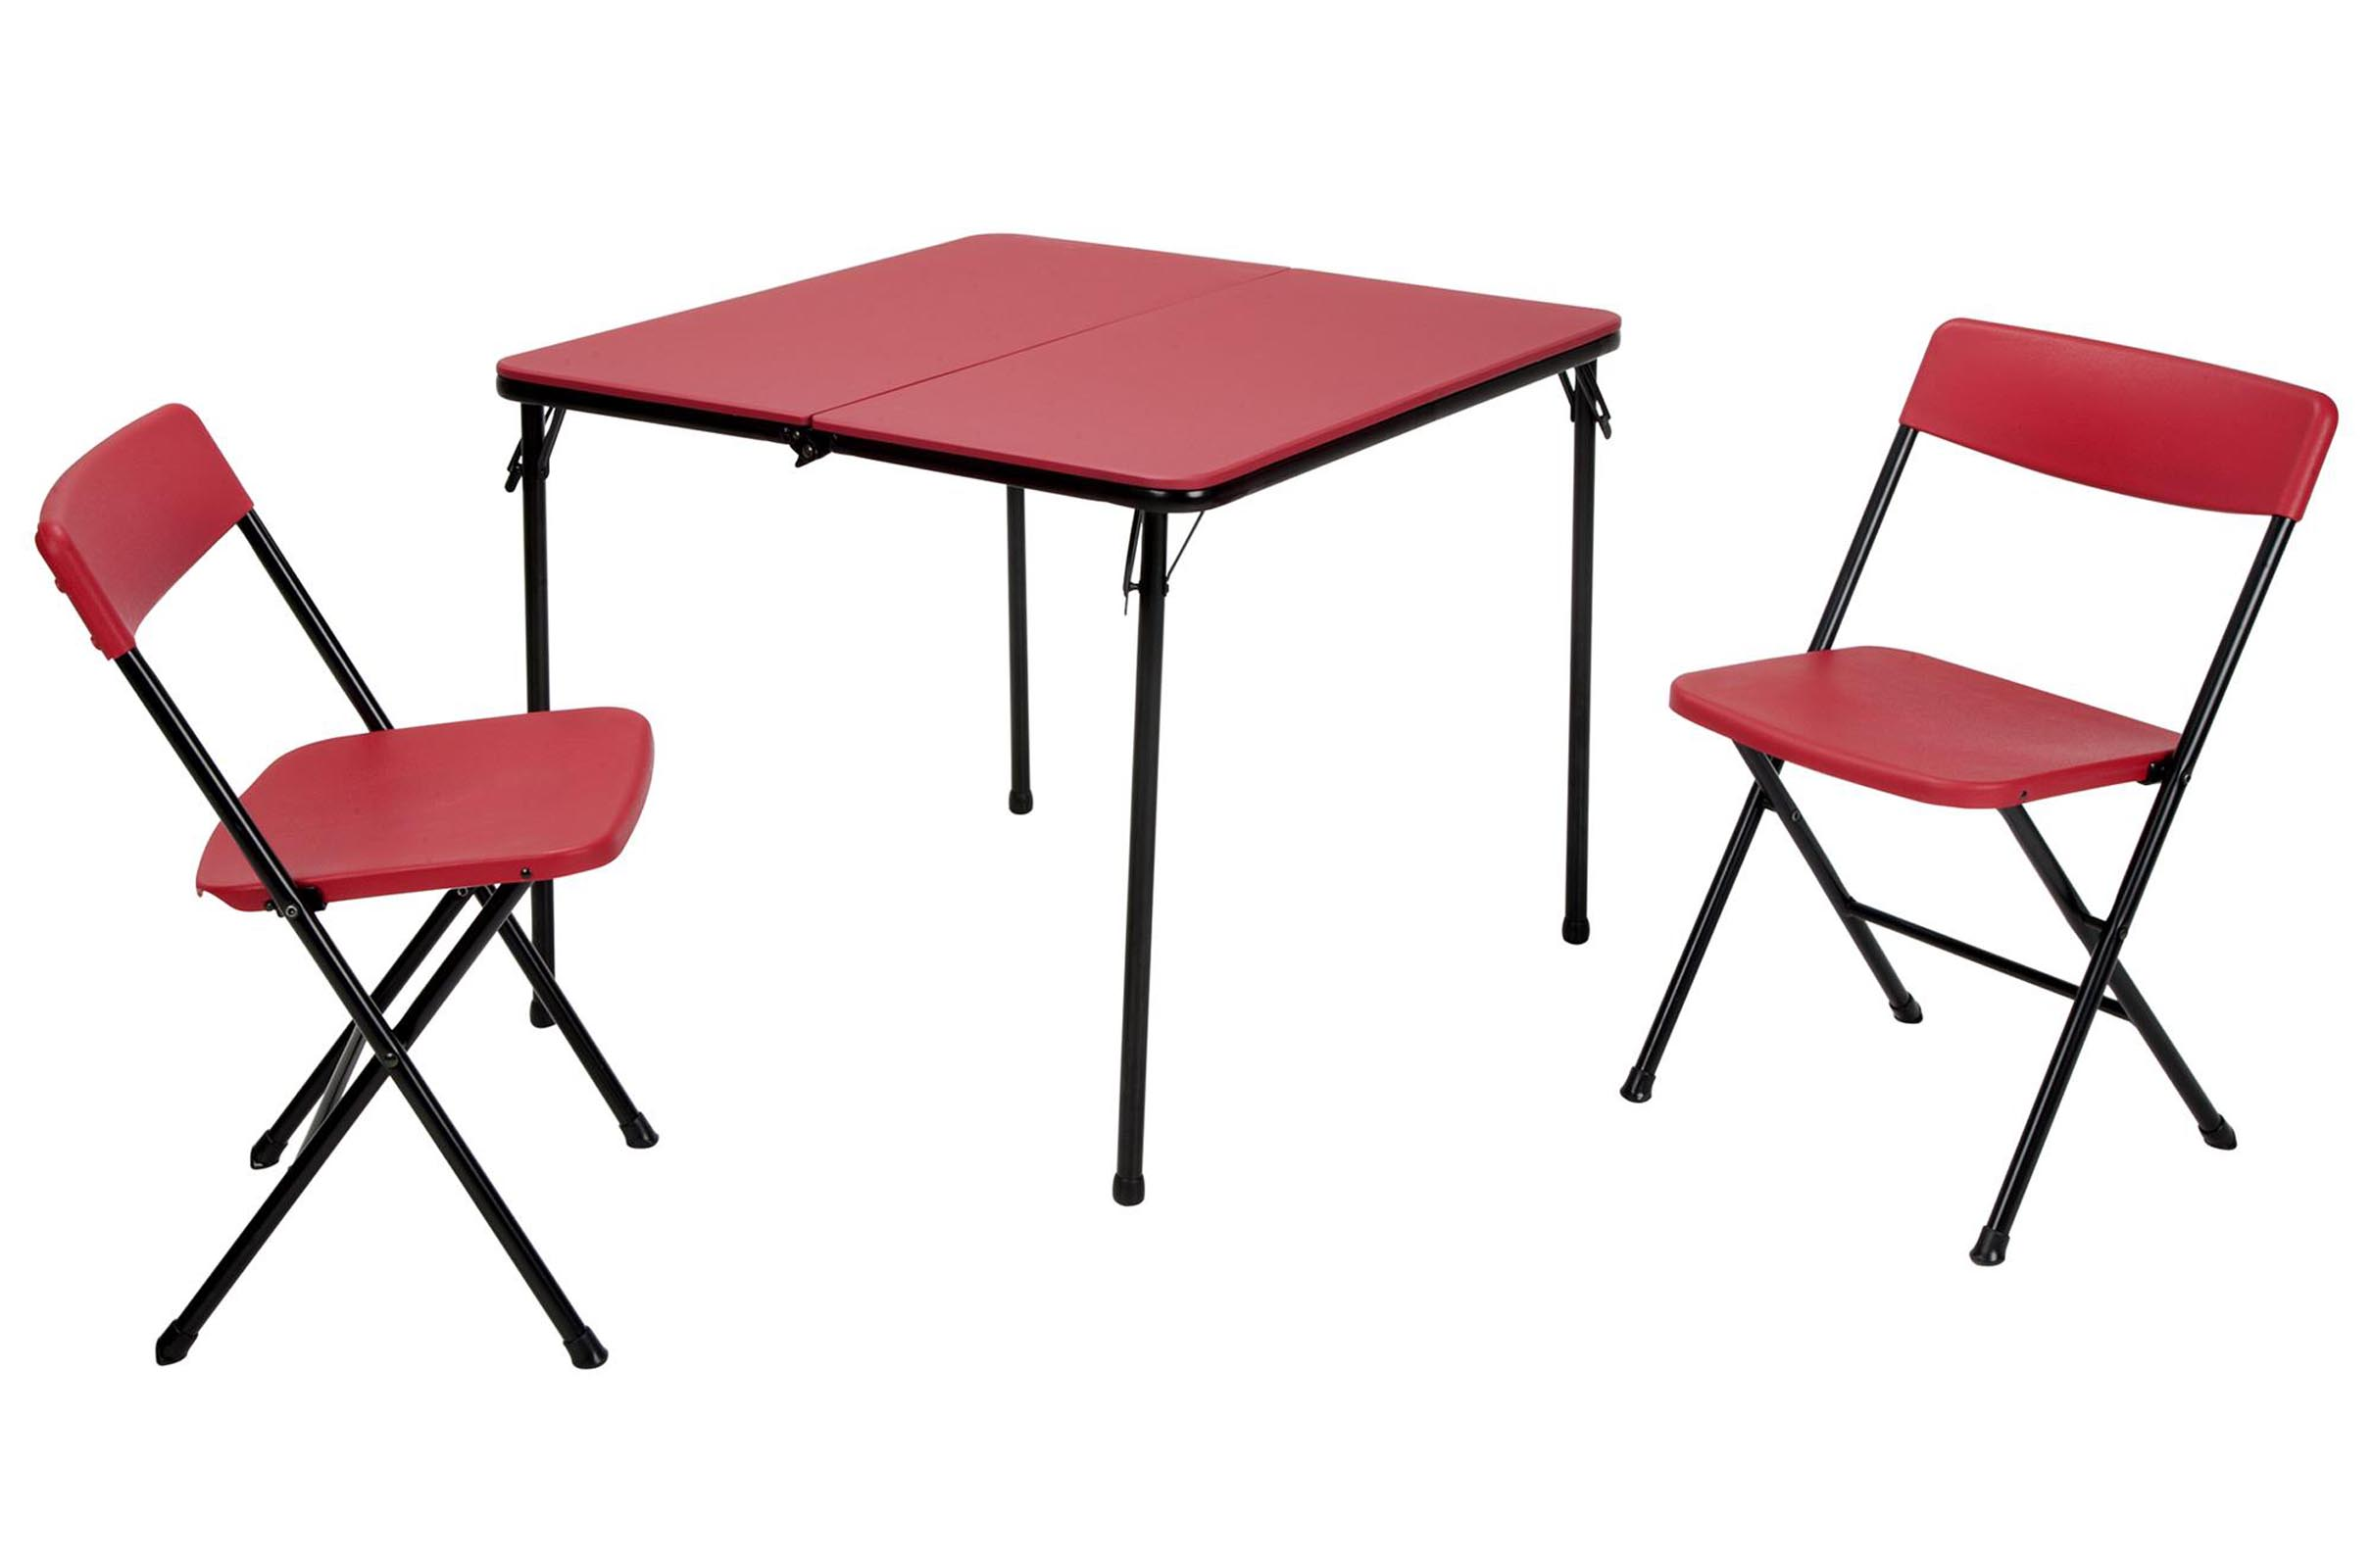 Cosco Card Table And Chairs Cosco Home And Office Products 3 Piece Red Center Fold